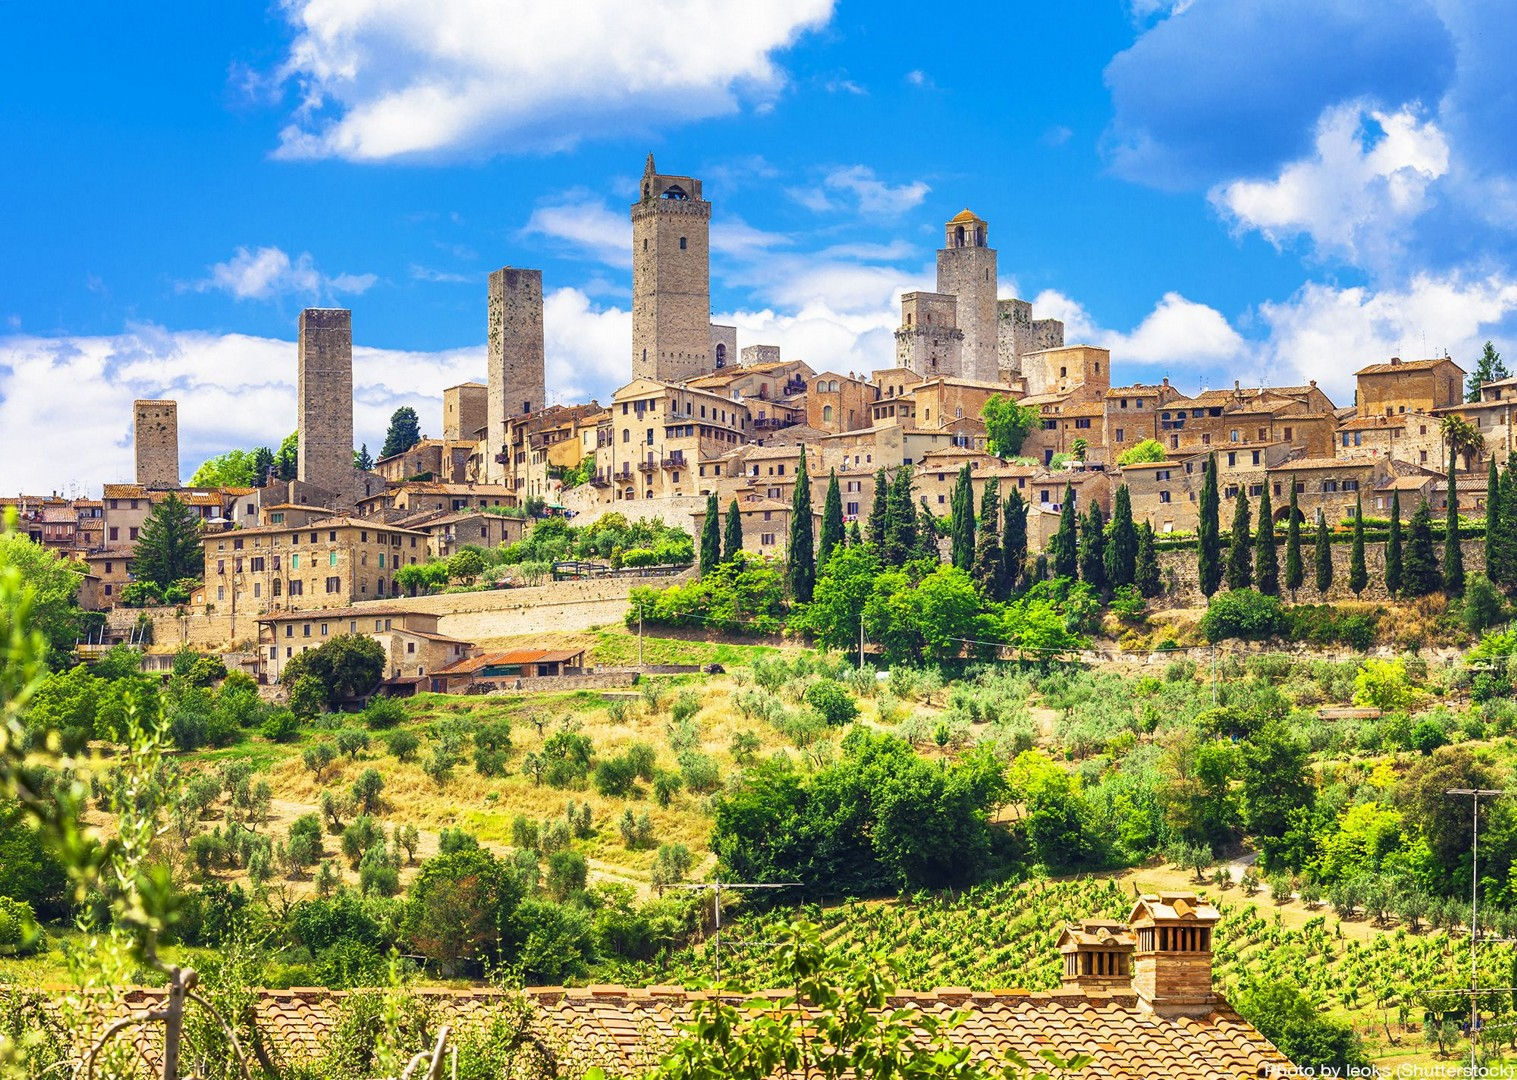 san-giminiano-italy-tuscany-leisure-cycling-culture.jpg - Italy - Classic Tuscany - Self-Guided Leisure Cycling Holiday - Leisure Cycling